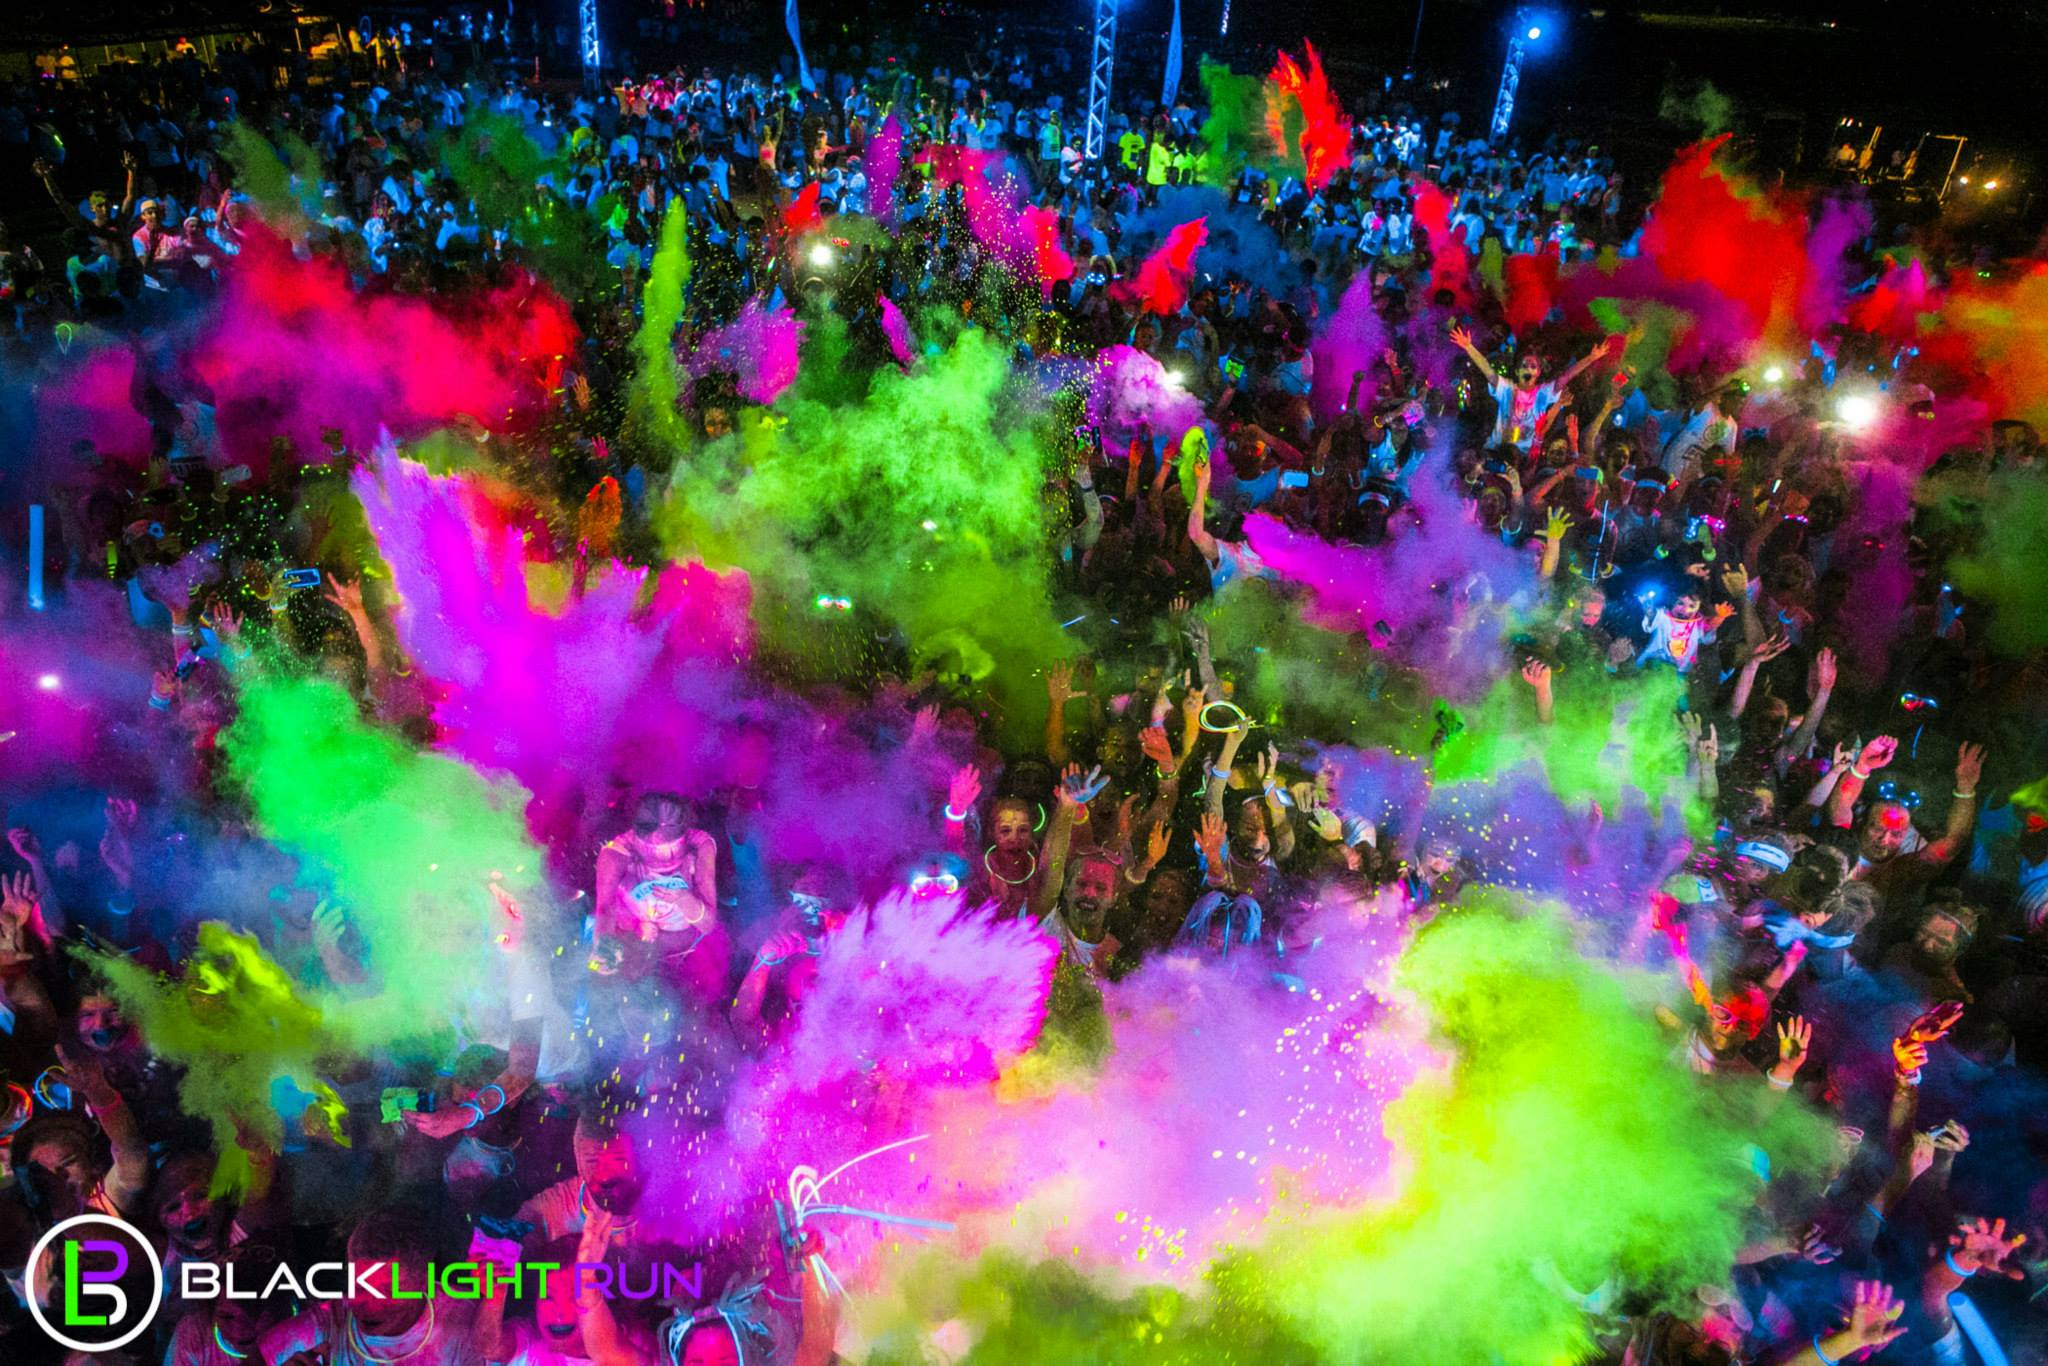 A  Blacklight Run  is a 5k in which participants get doused with a different color glow powder for each milestone they reach. Cool Events LLC runs many similar events all over the country, with portions of proceeds going to cancer research.